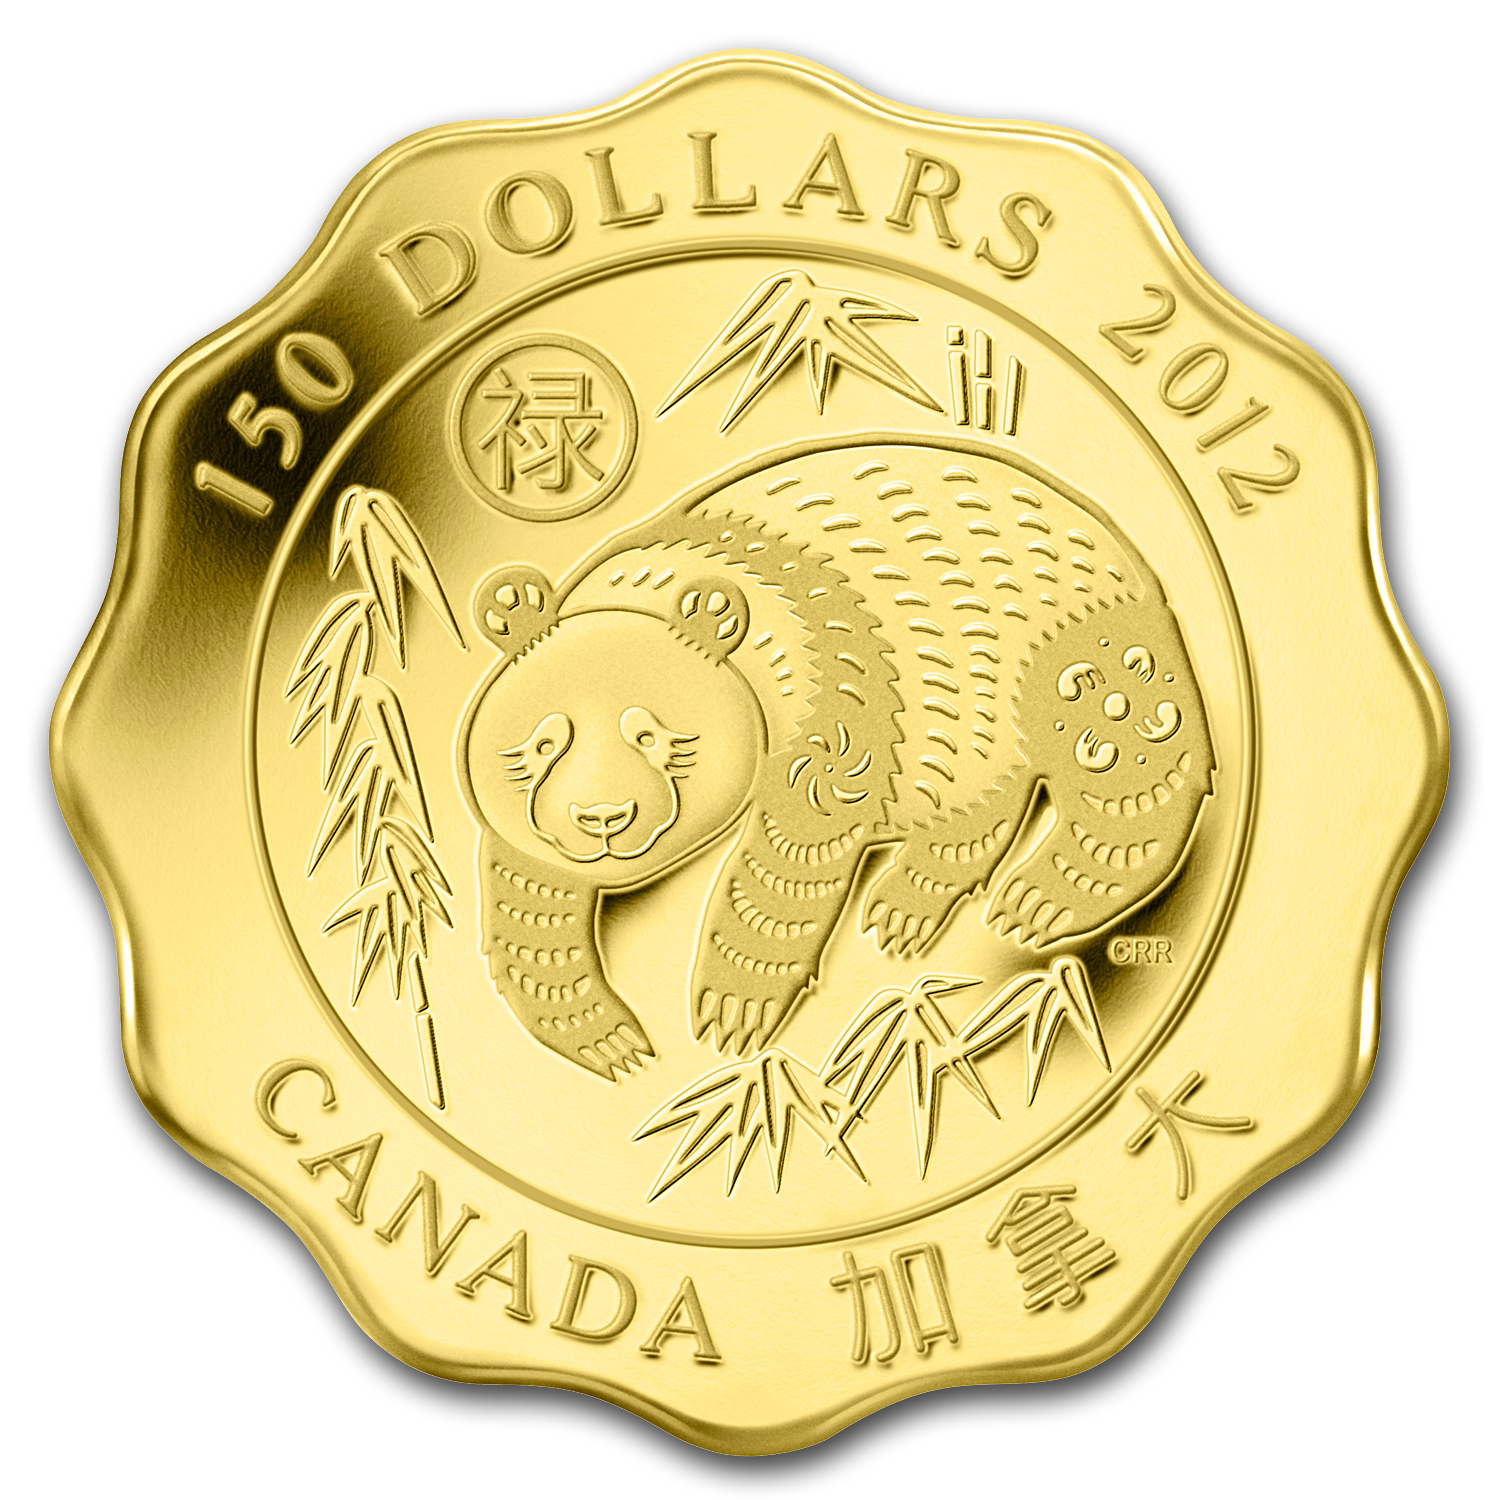 2012 Gold Can $150 Scallop Panda Blessings of Good Fortune Prf